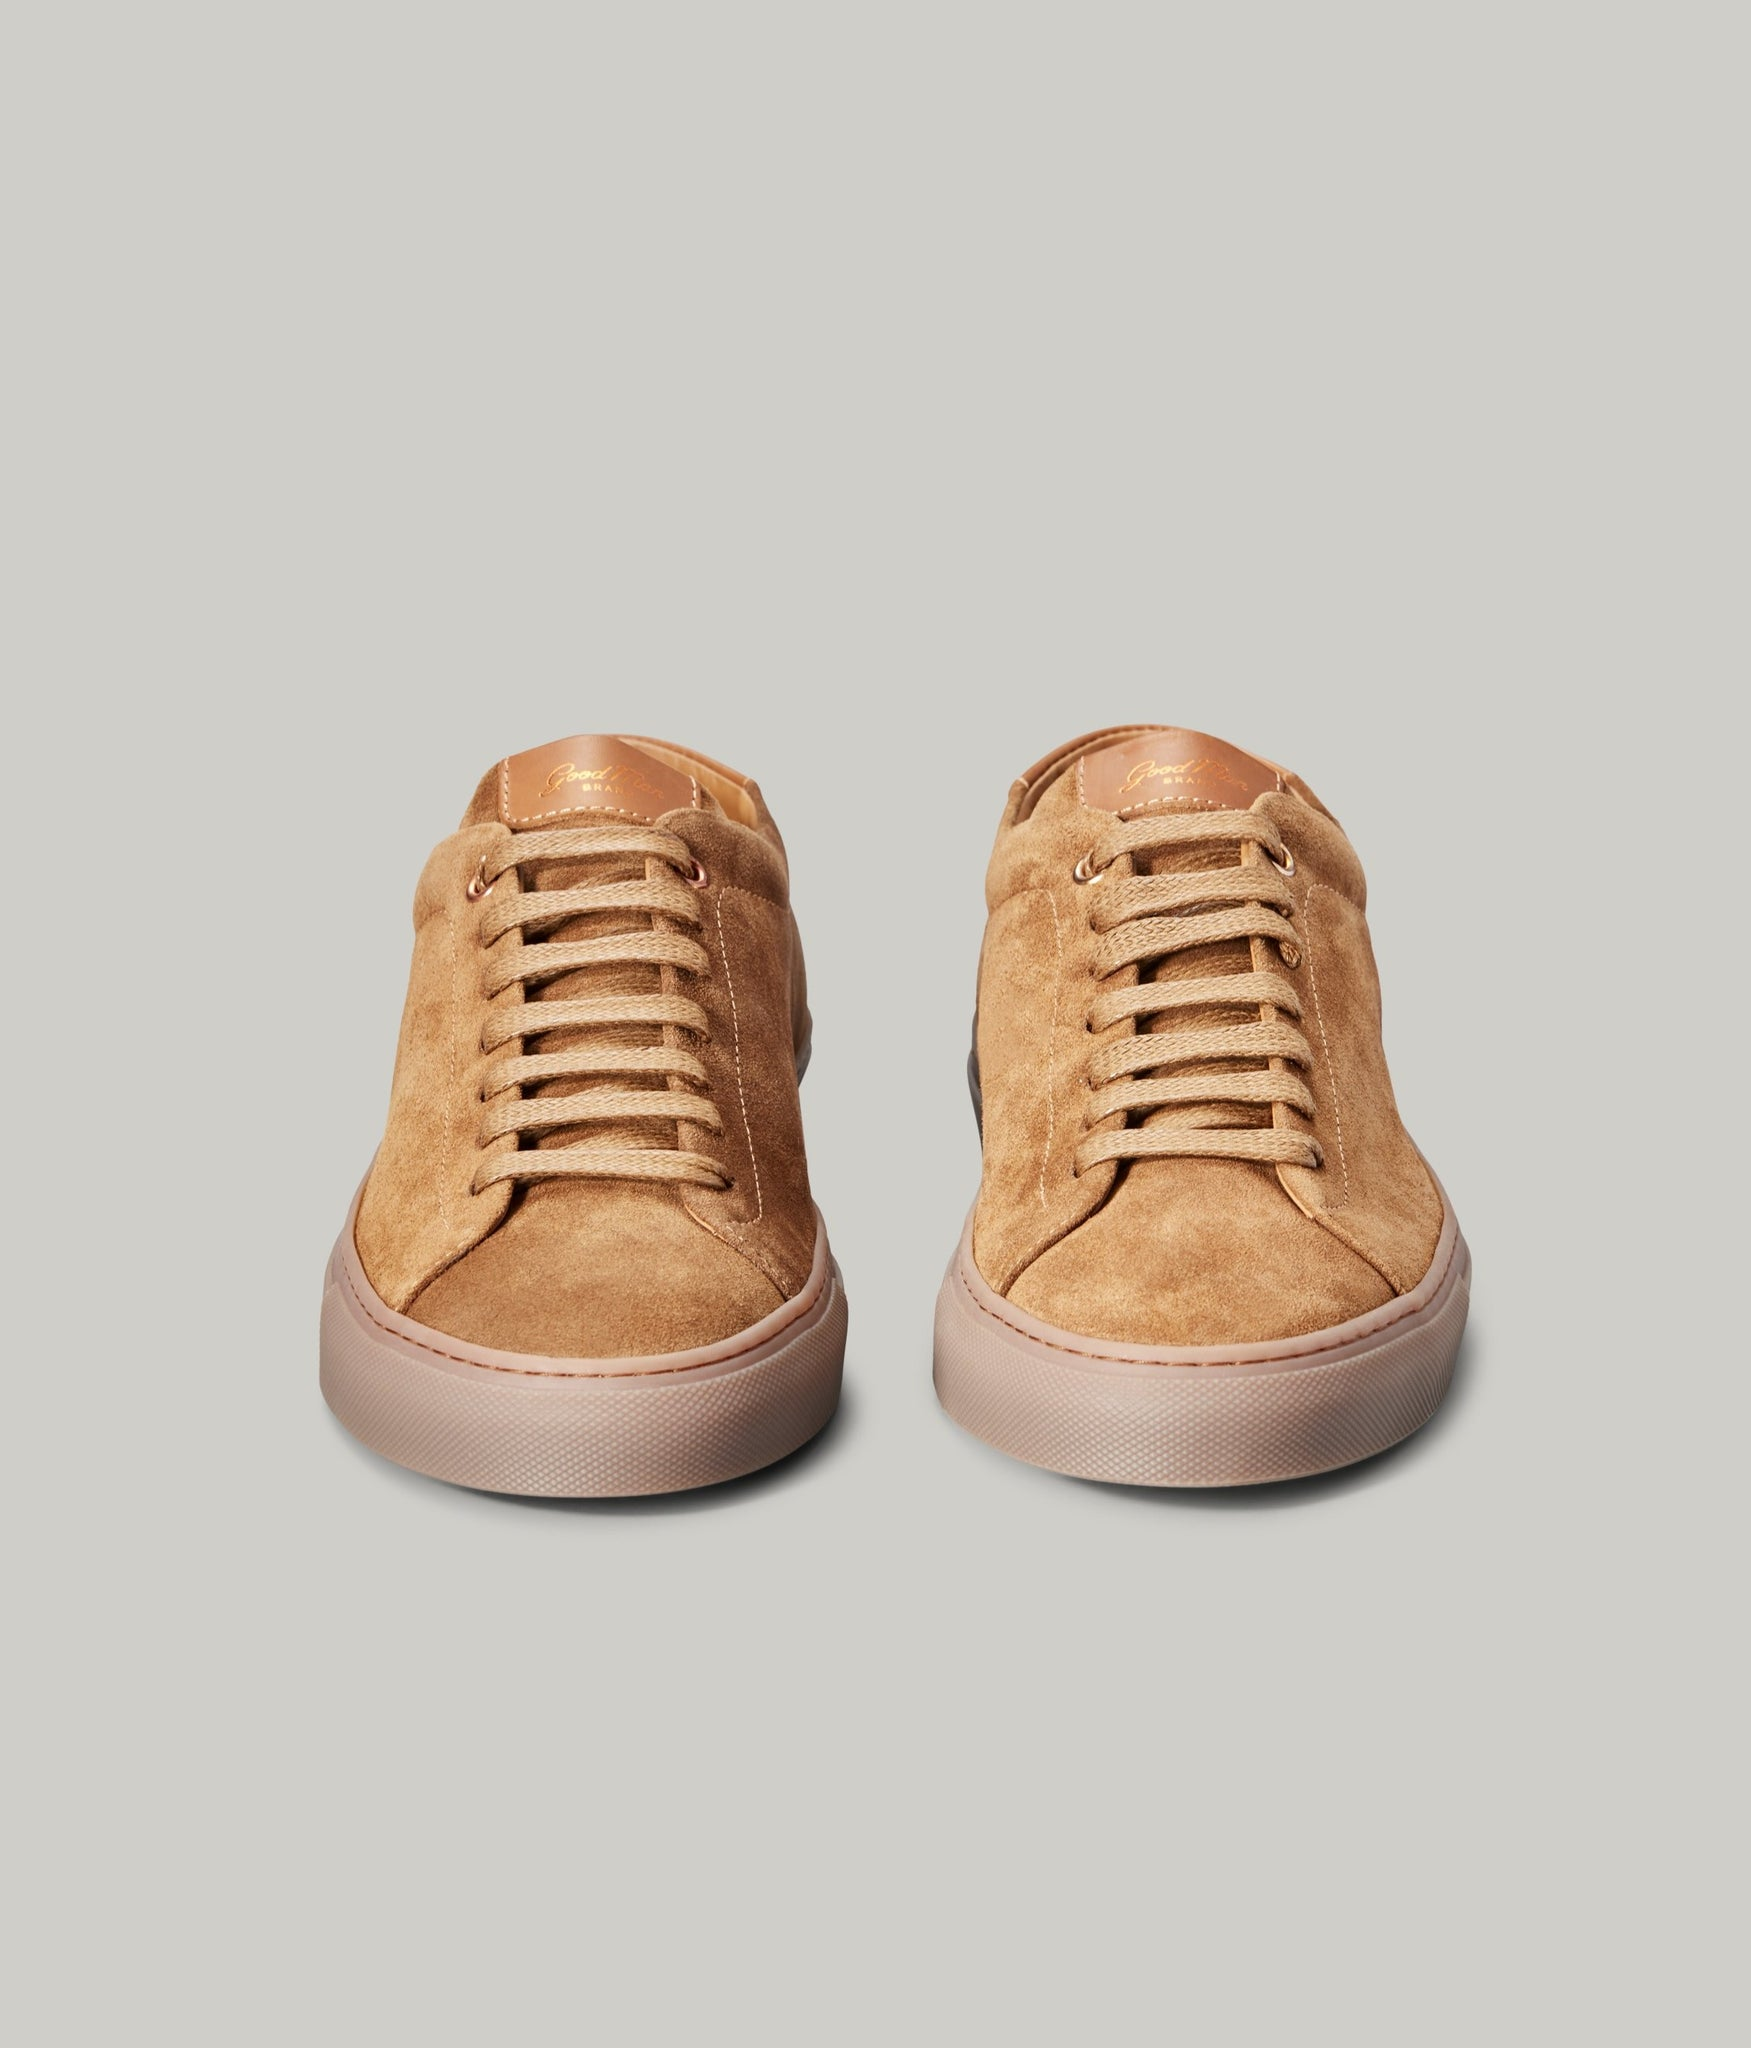 Edge Mono Lo-Top Sneaker in Suede - Snuff